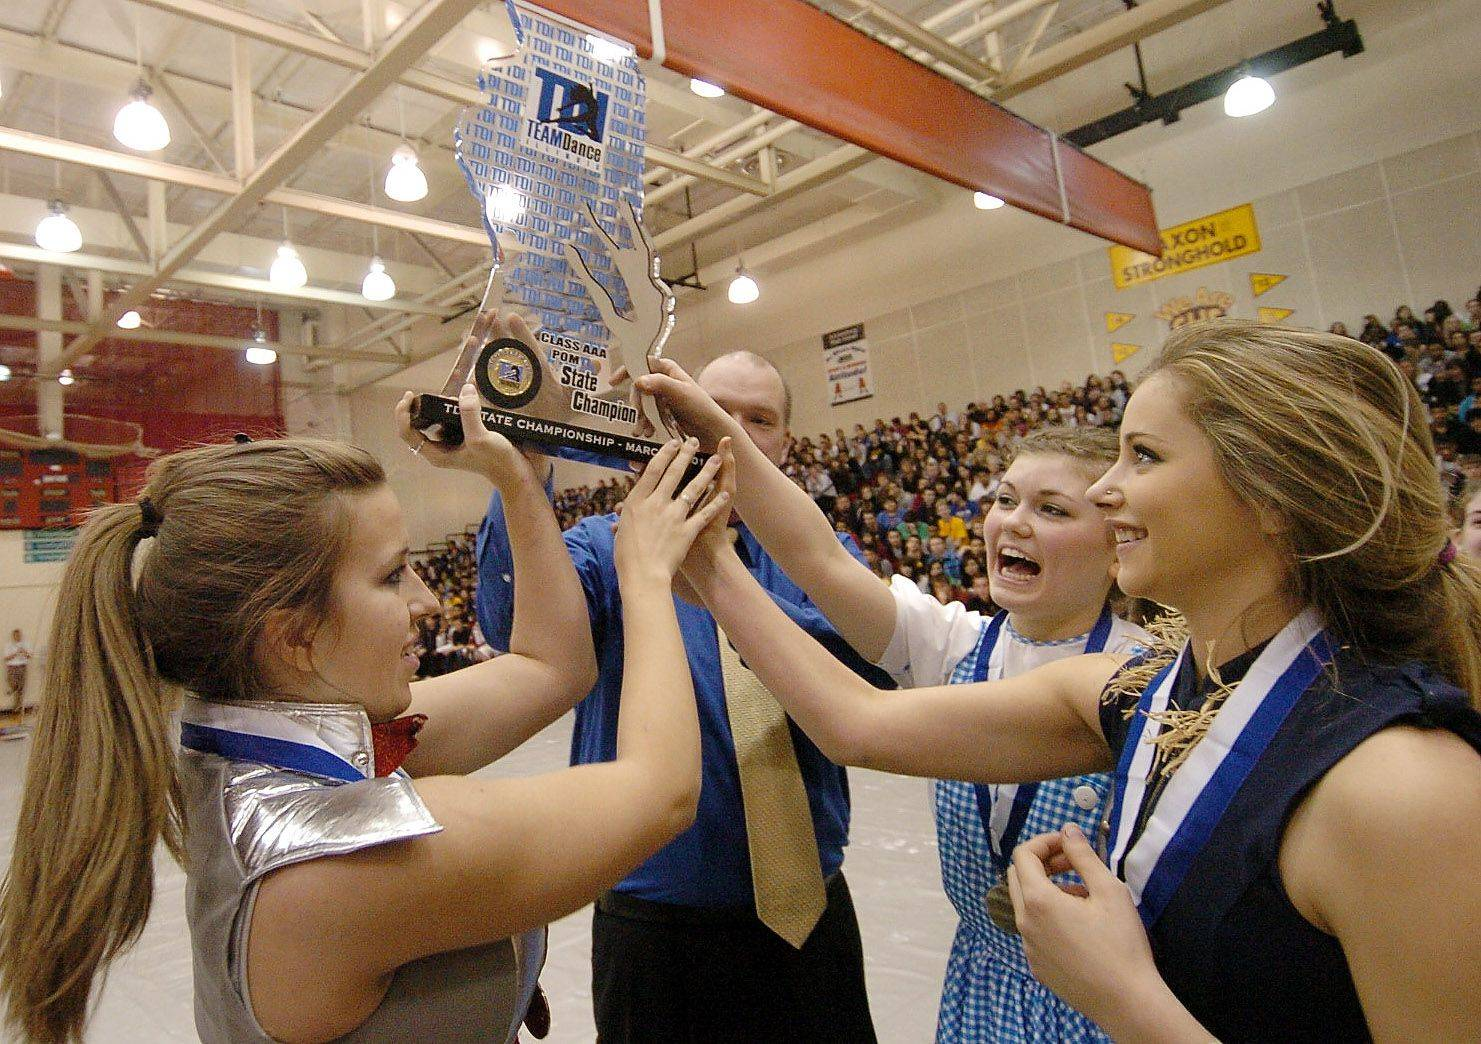 From left, Lauren Berndt, Marisa Grzeszkowiak and Rachel Desimone hoist their 1st place State Poms trophy with Schaumburg High School Principal Tim Little.